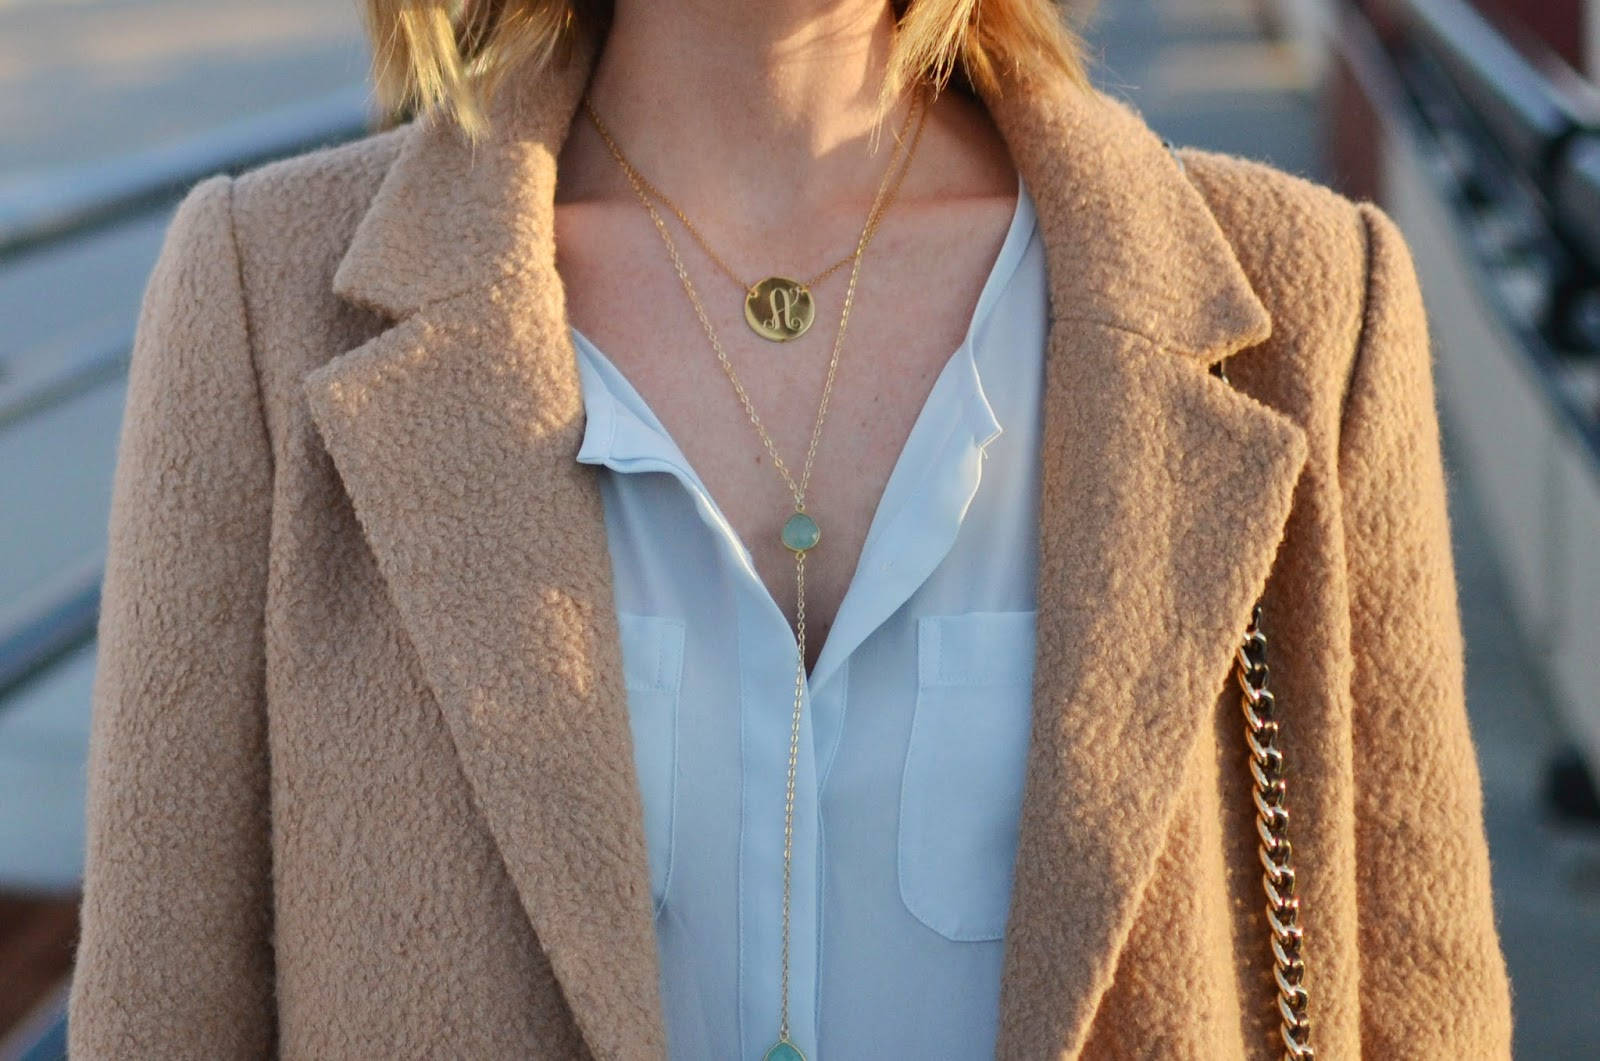 Blogger Amy from TheRealArnolds wearing MIDORI Cecelia Necklace